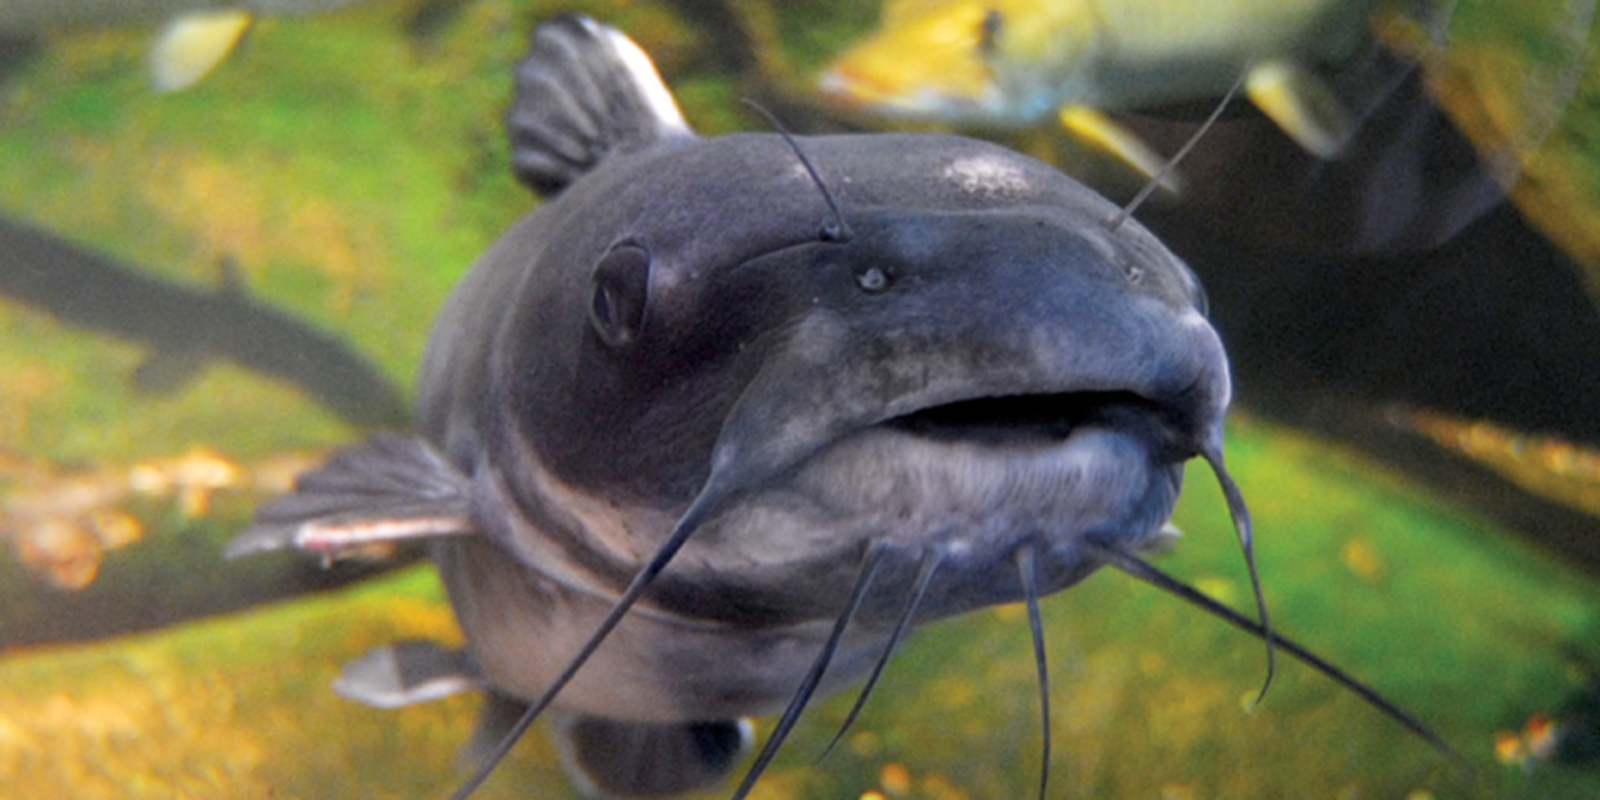 Catfish at Great Lakes Aquarium